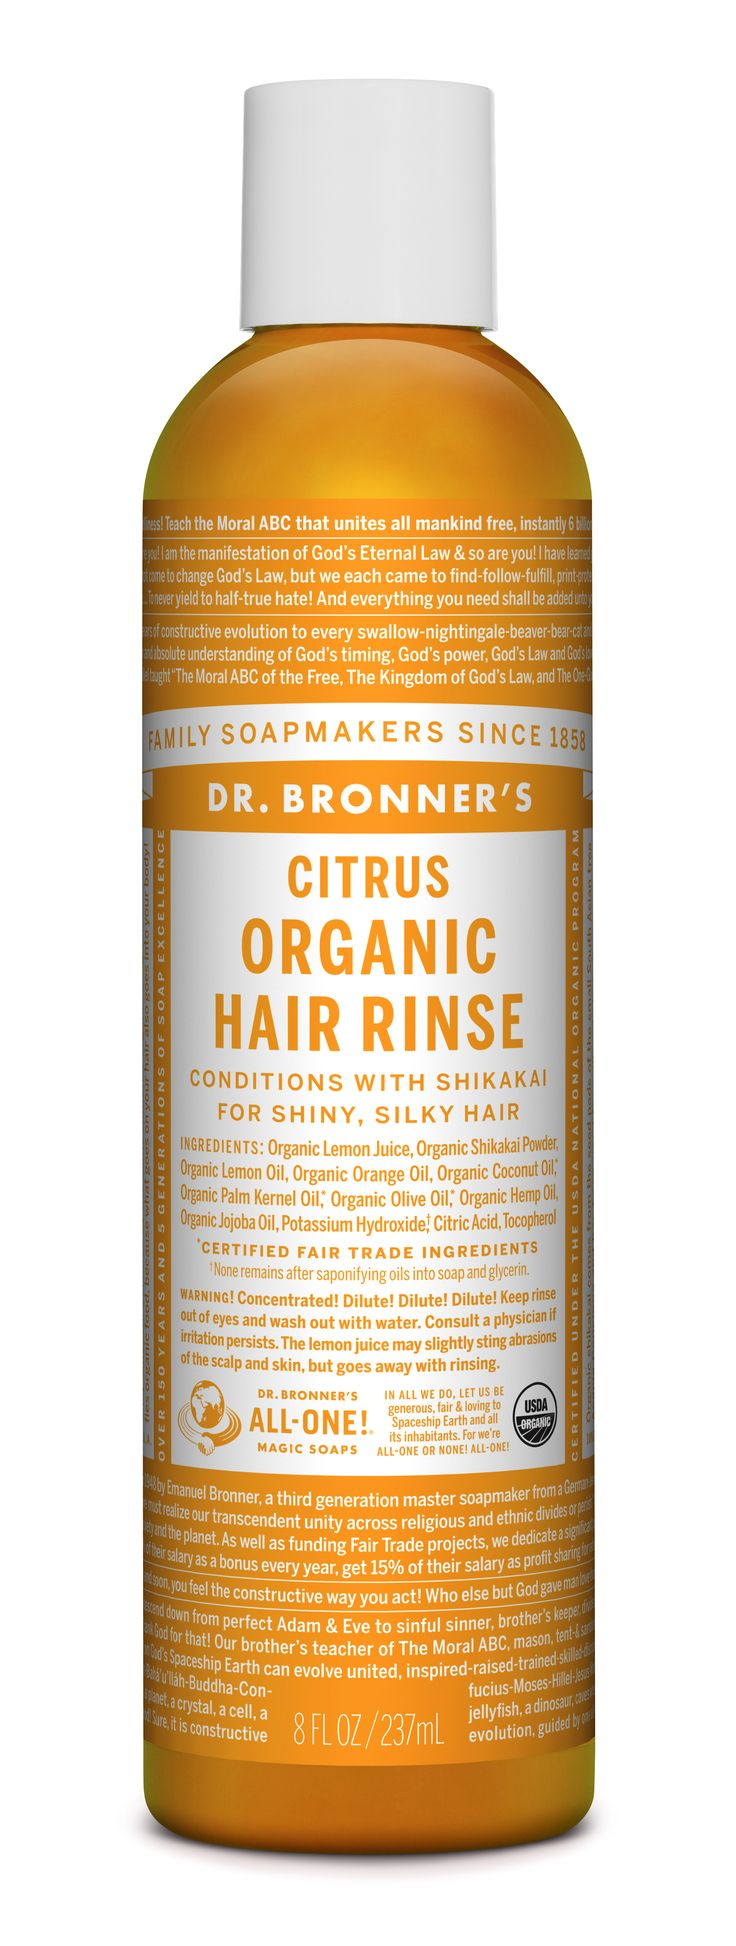 Use Dr. Bronner's Organic Hair Rinse as part of an organic hair care routine, together with any of our soaps! After shampooing with Dr. Bronner's soap, dilute Organic Hair Rinse in 1 cup water and pour it over hair. The citrus extracts in the rinse help to counteract the soap's alkalinity & tamp down the cuticles in your hair & leaving your hair manageable and smooth!